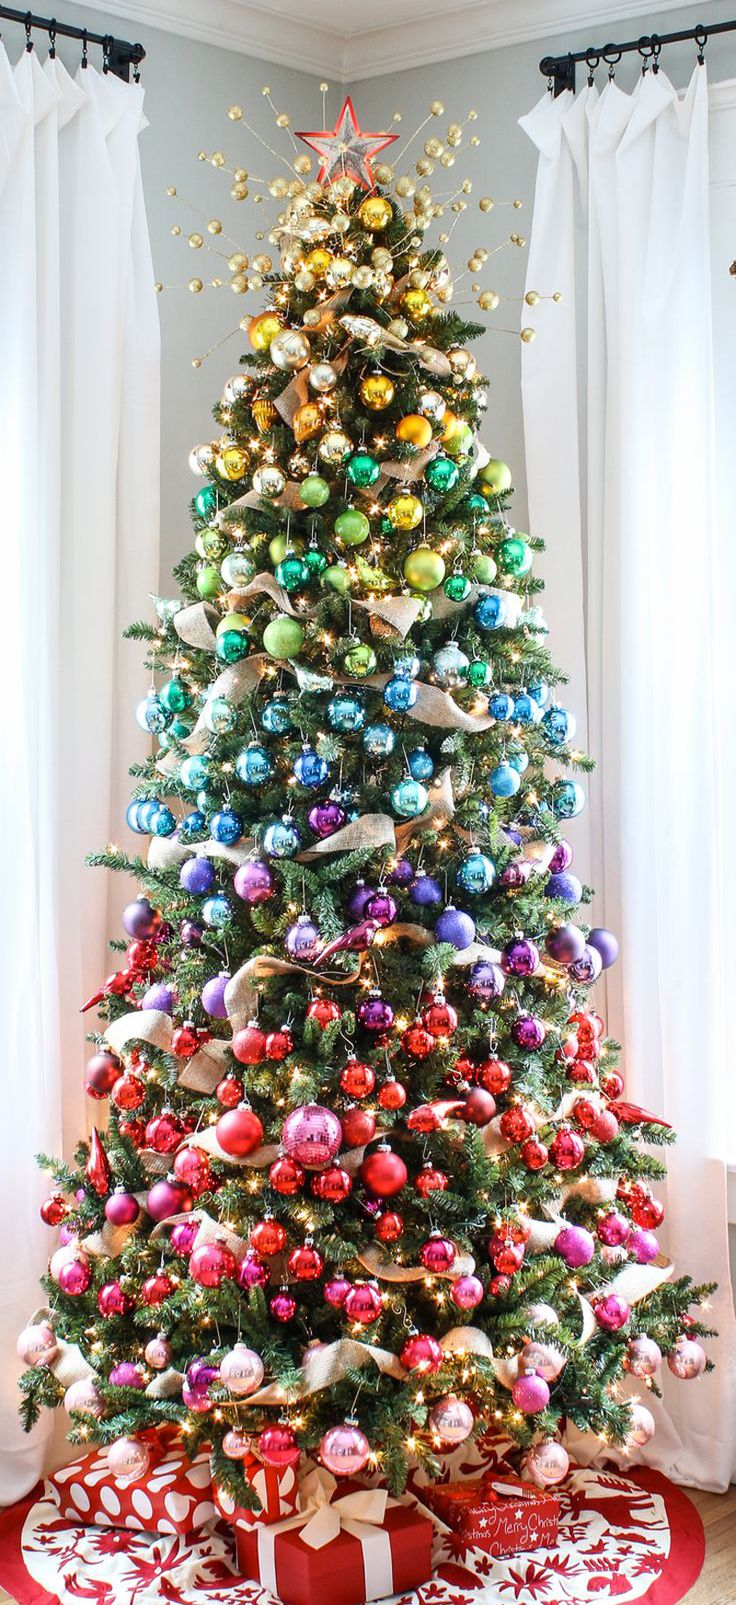 Looking for Something Different This Year Buy Artificial Christmas Trees | http://www.designrulz.com/design/2015/10/looking-for-something-different-this-year-buy-artificial-christmas-trees/